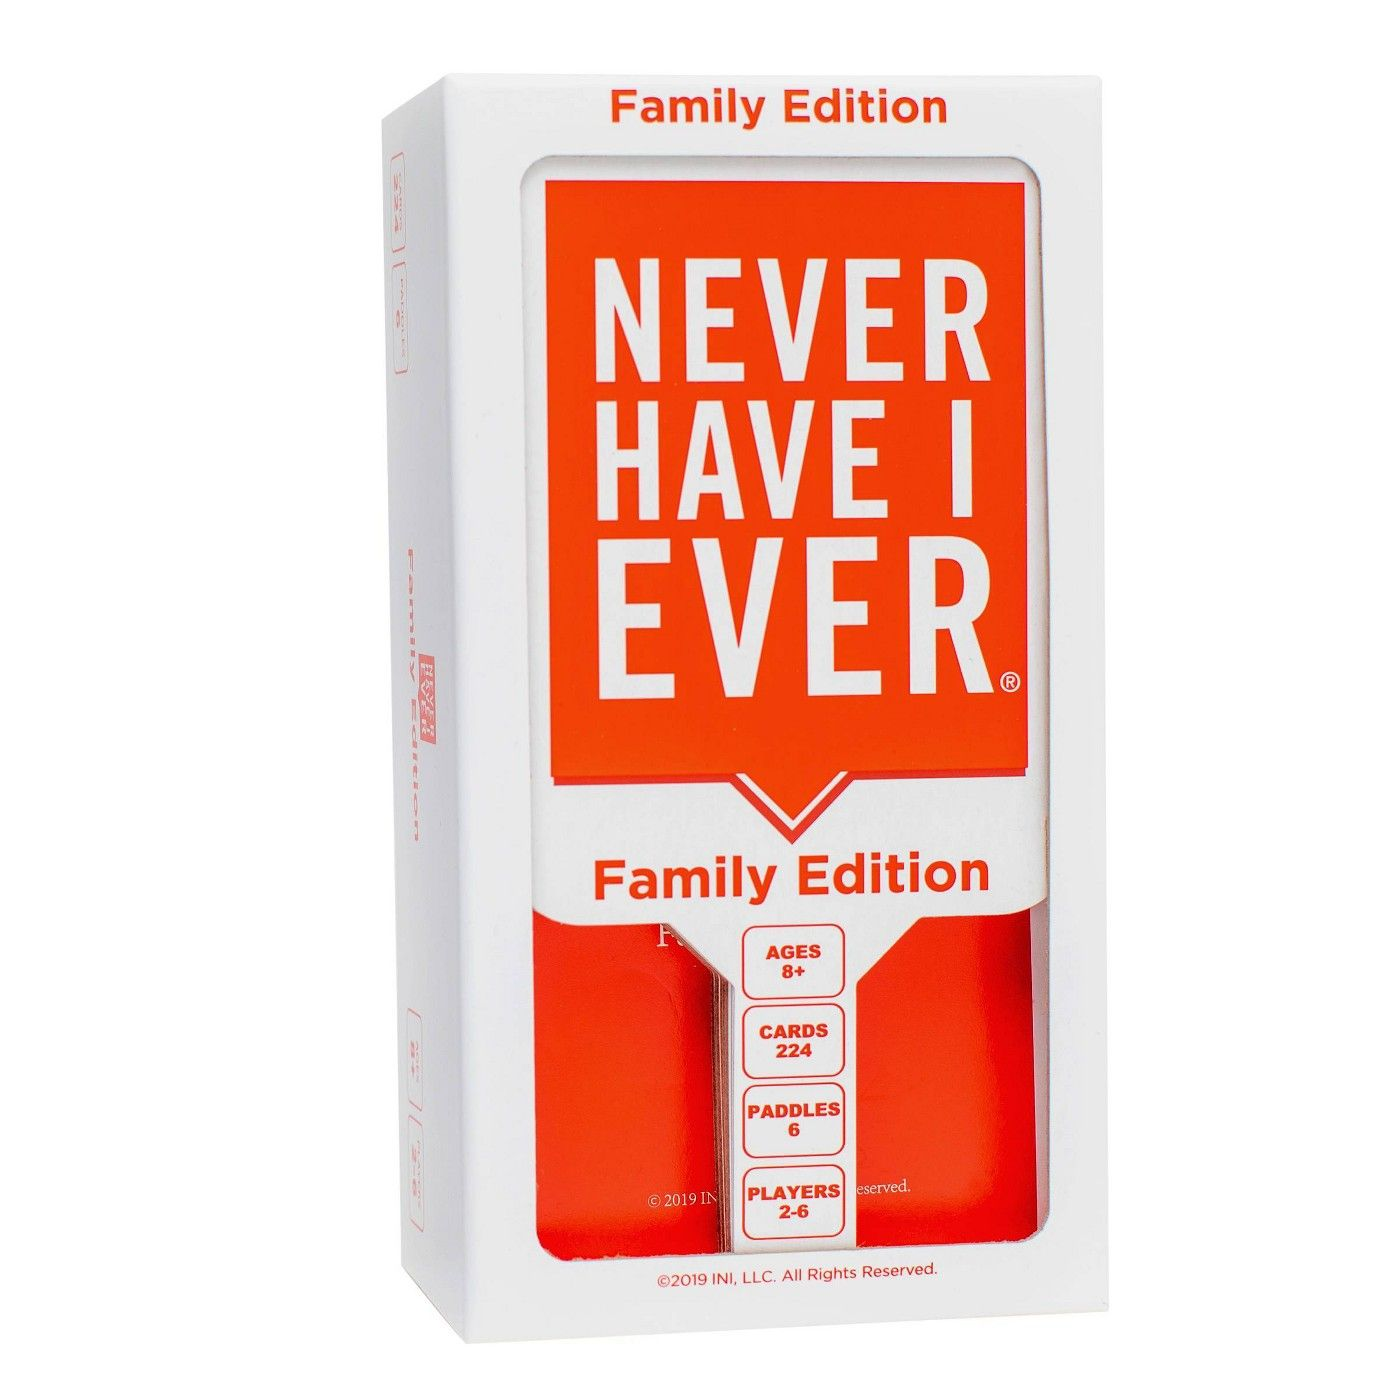 Never Have I Ever Family Edition Game Never have i ever